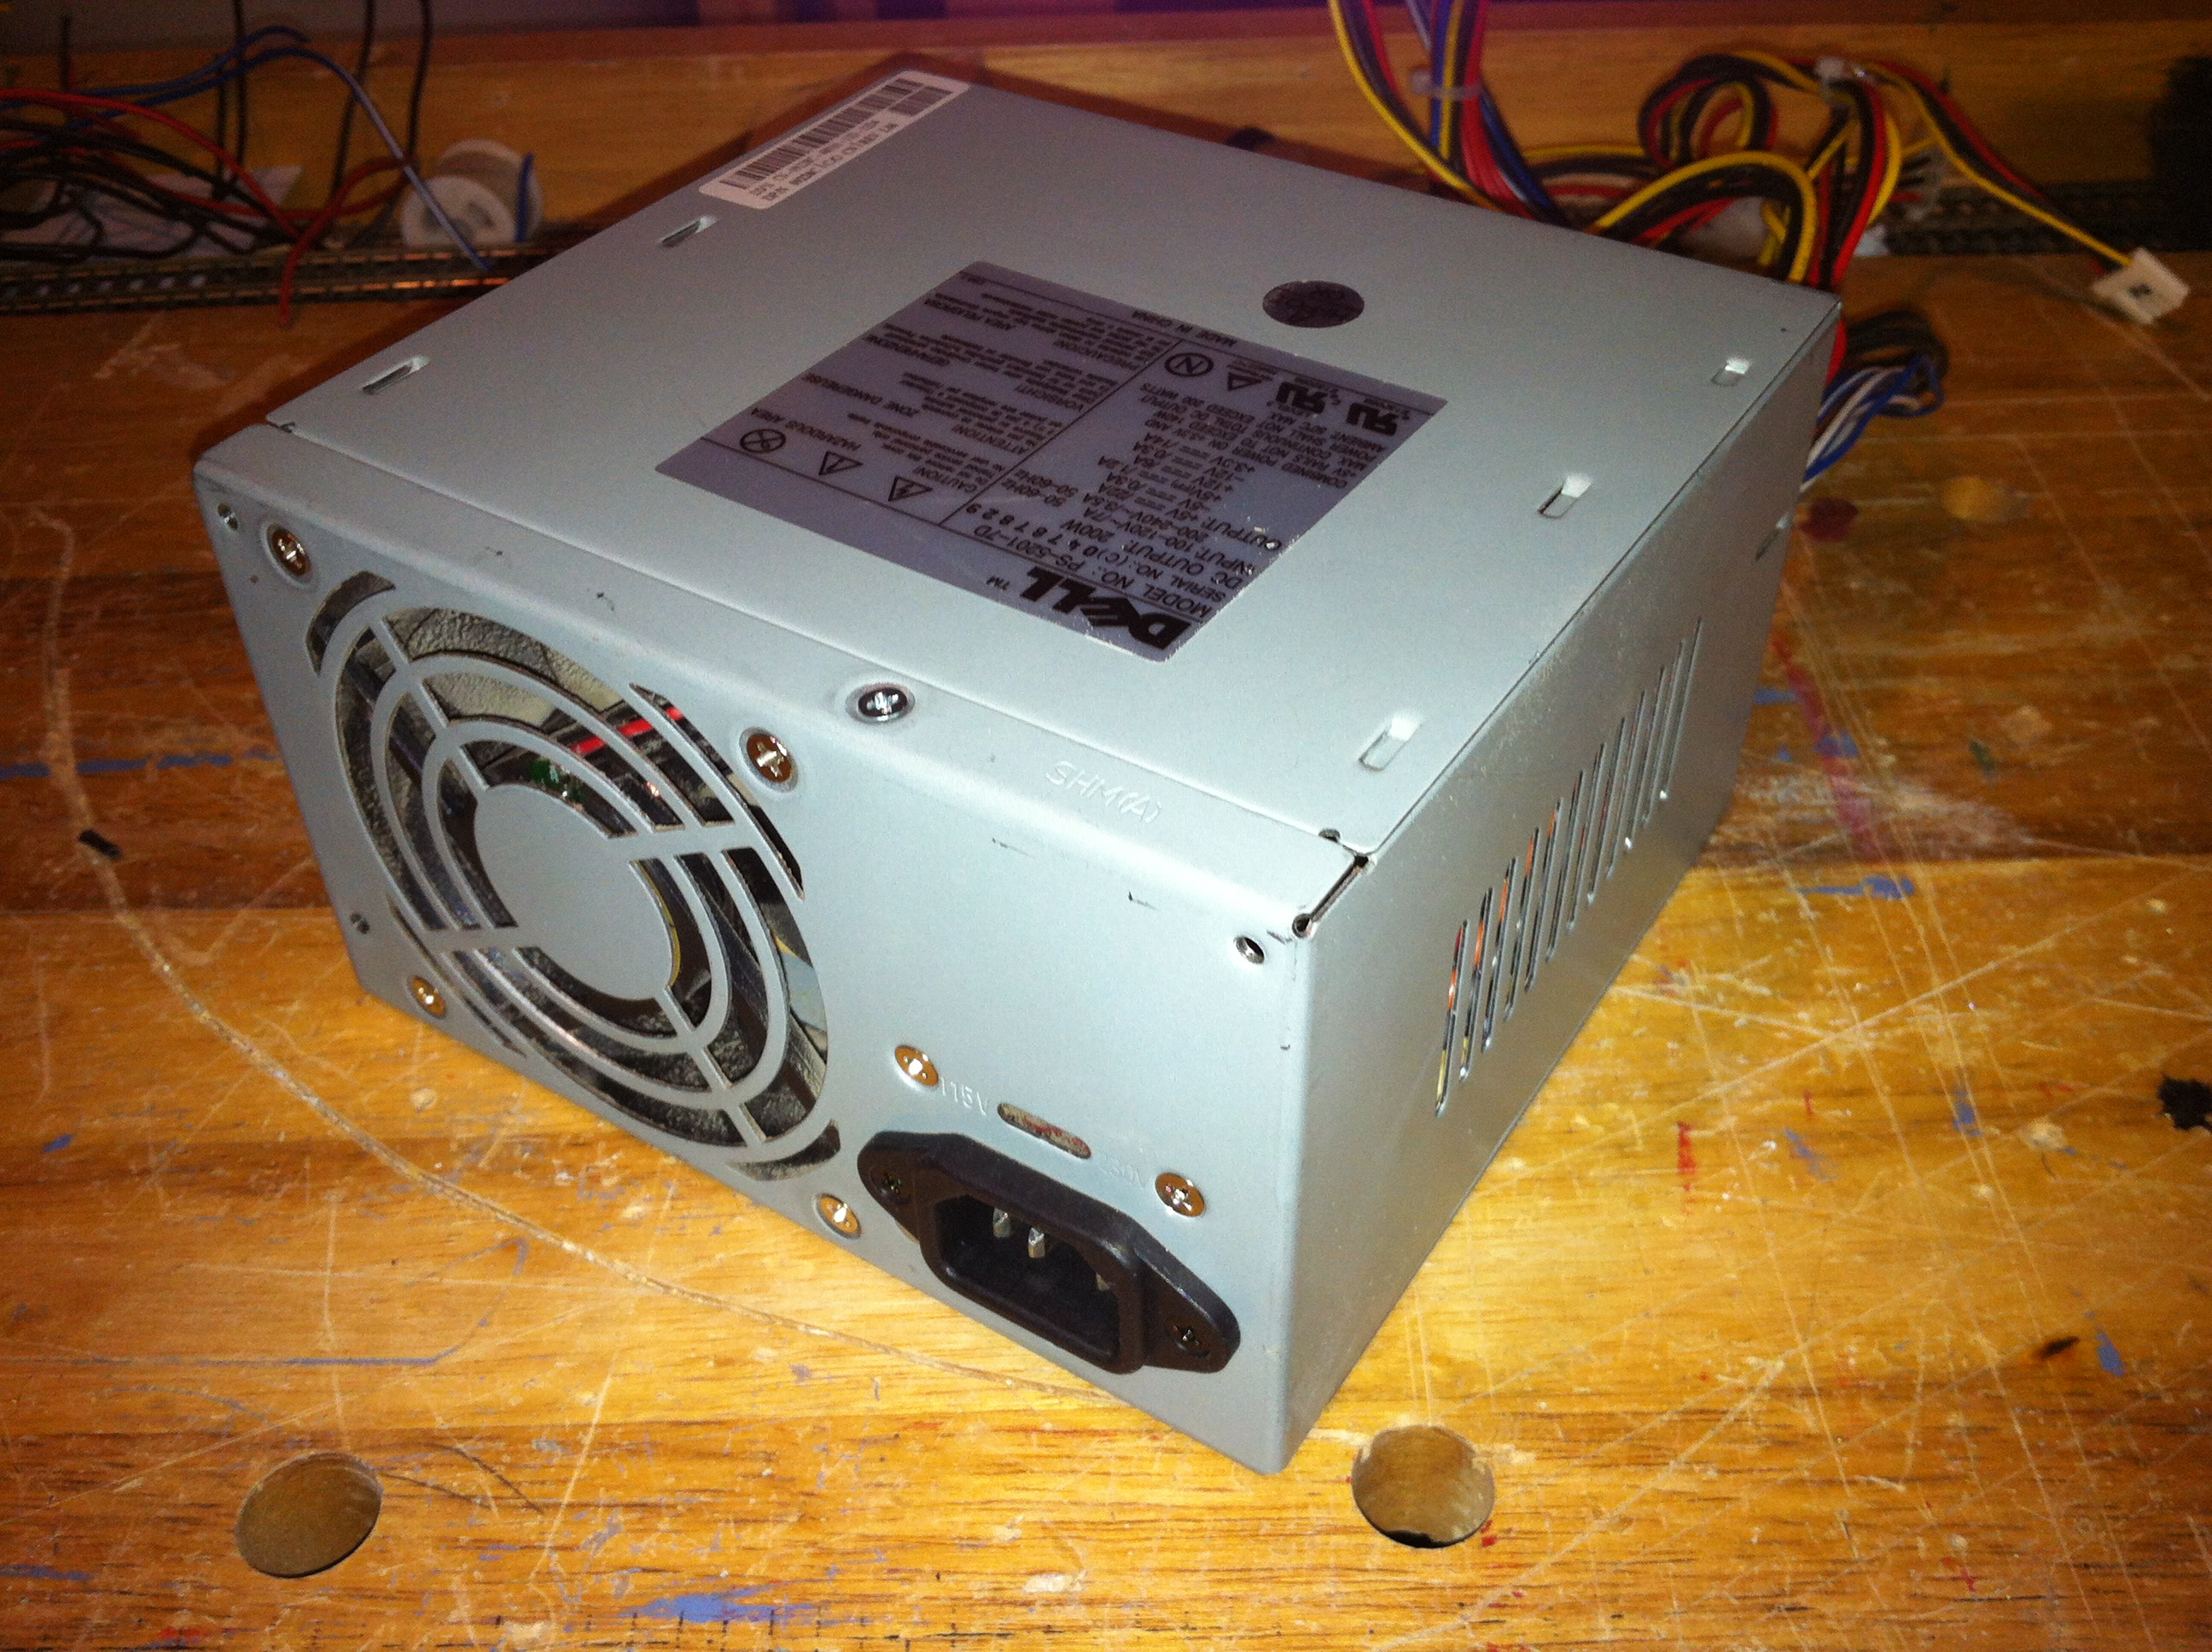 Typical power supply removed from computer